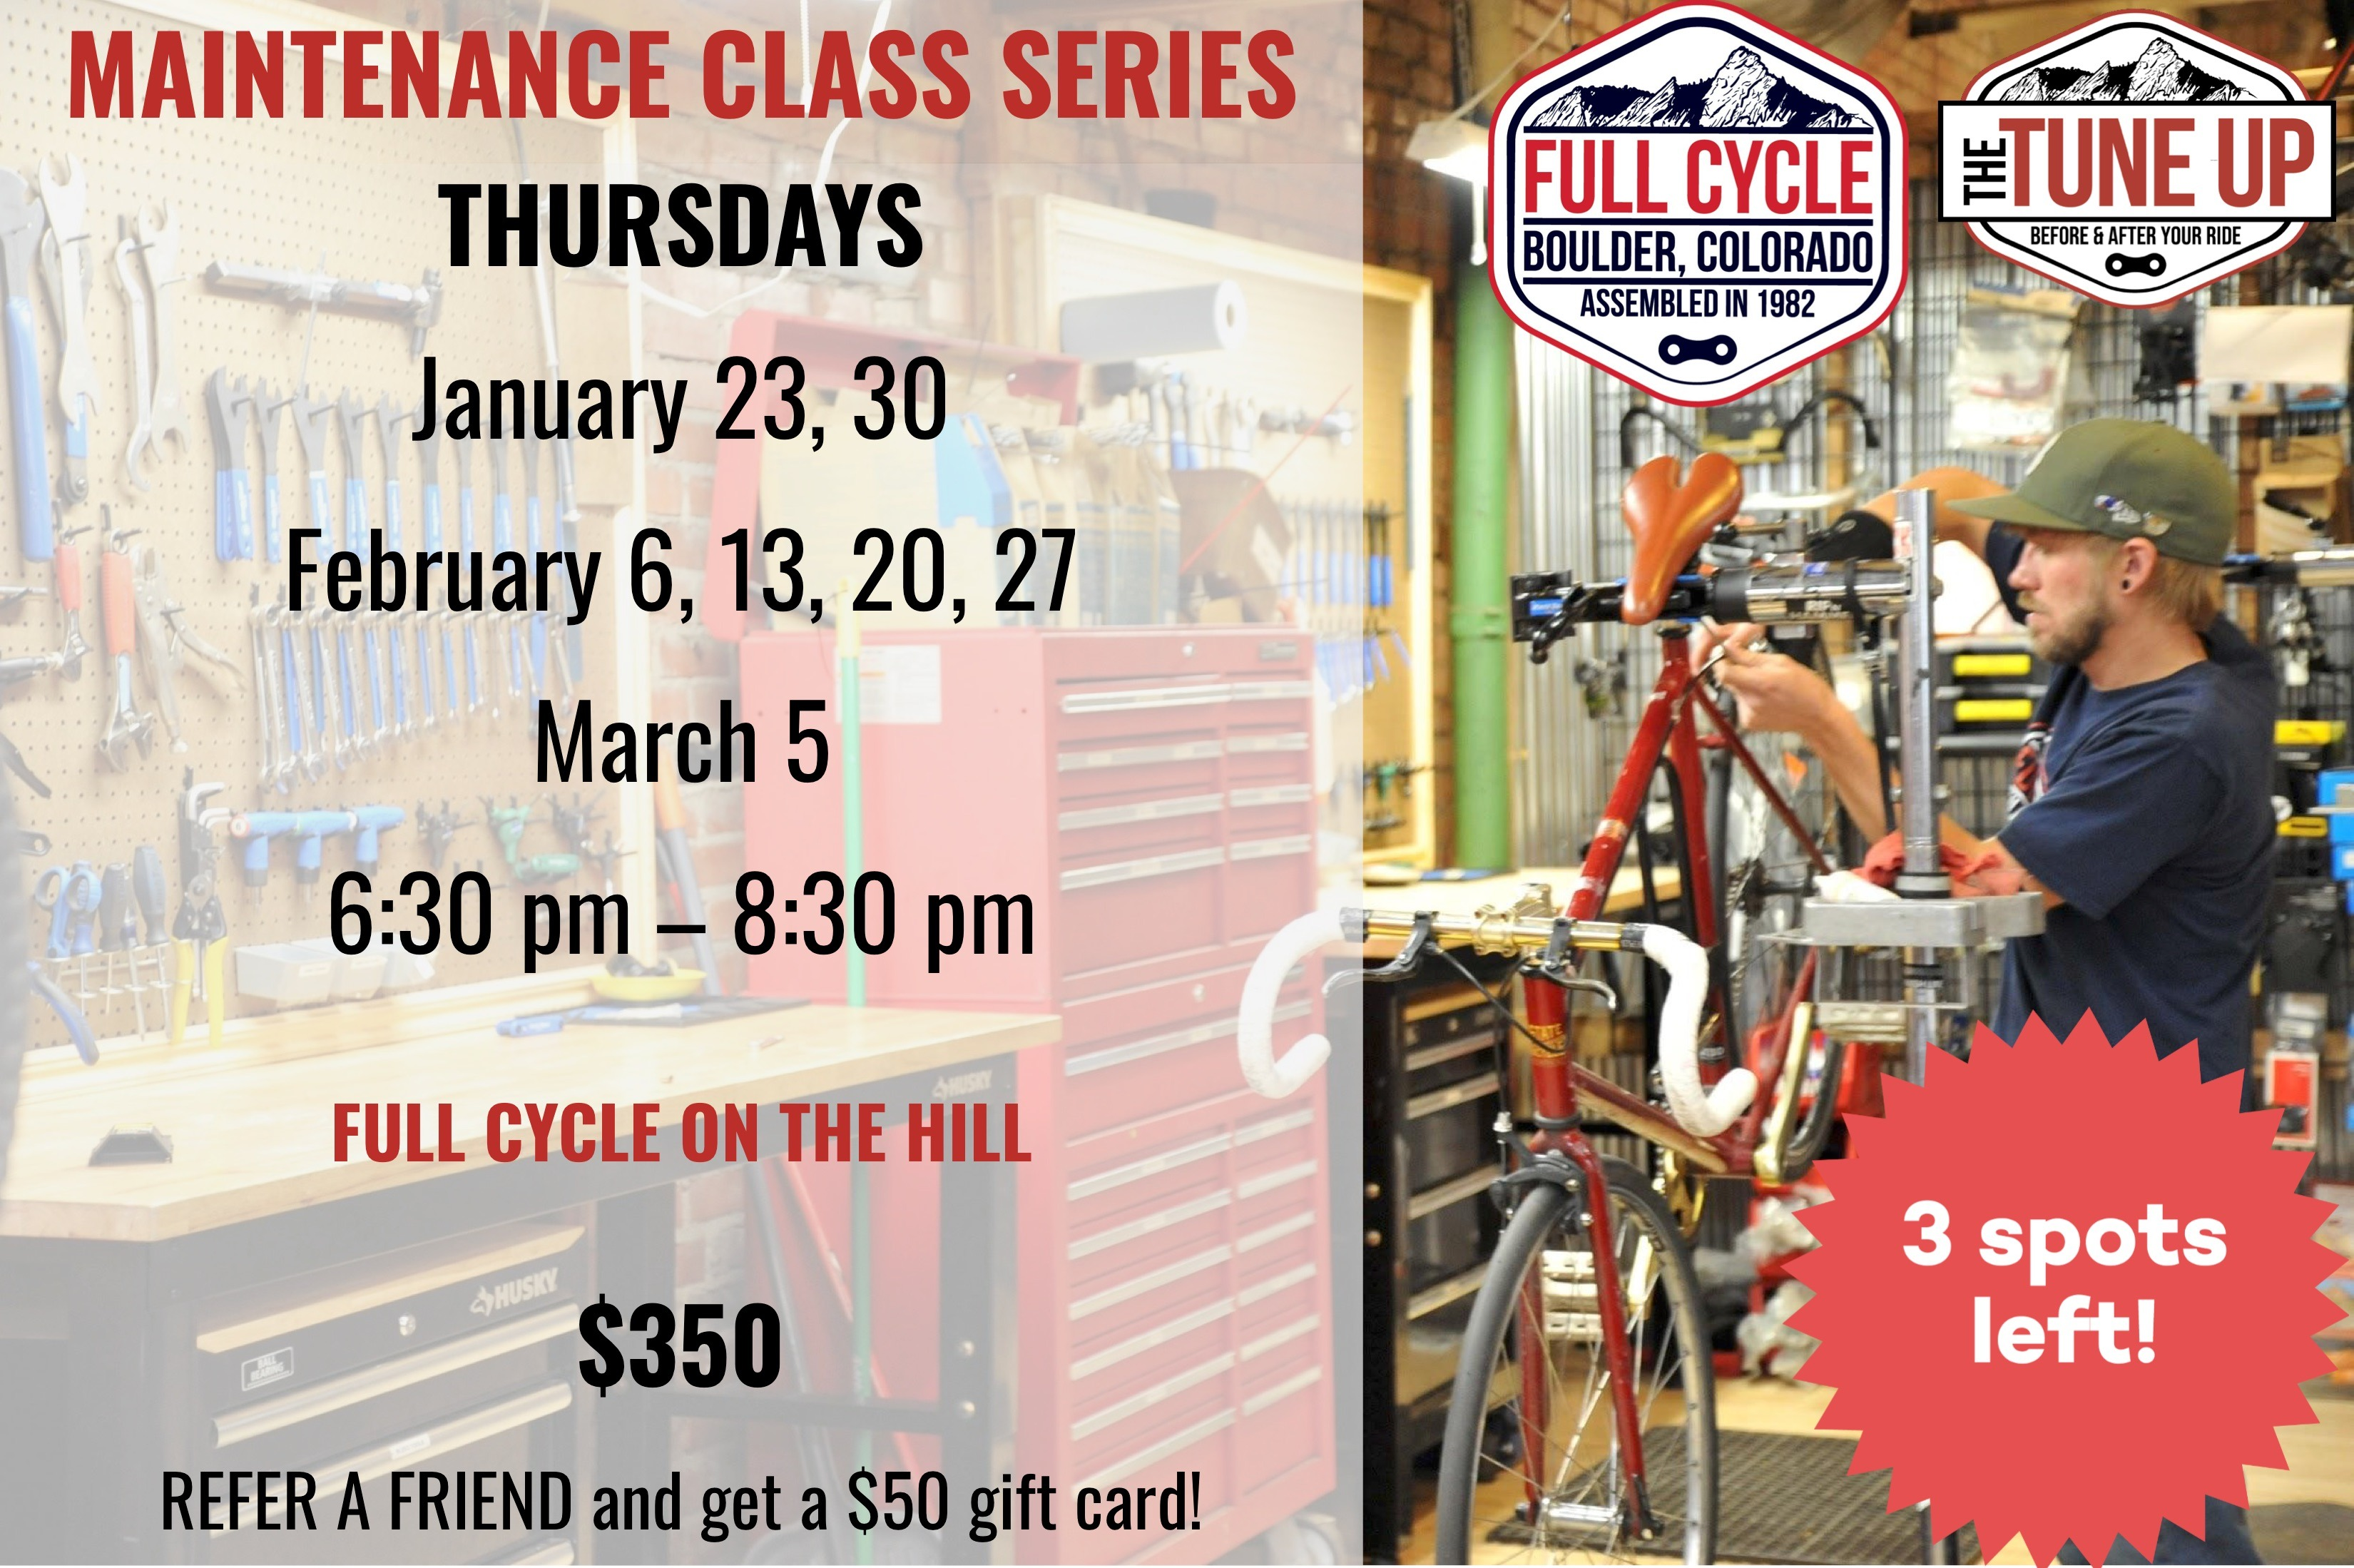 Maintenance Class Series - Bike Shop | Full Cycle